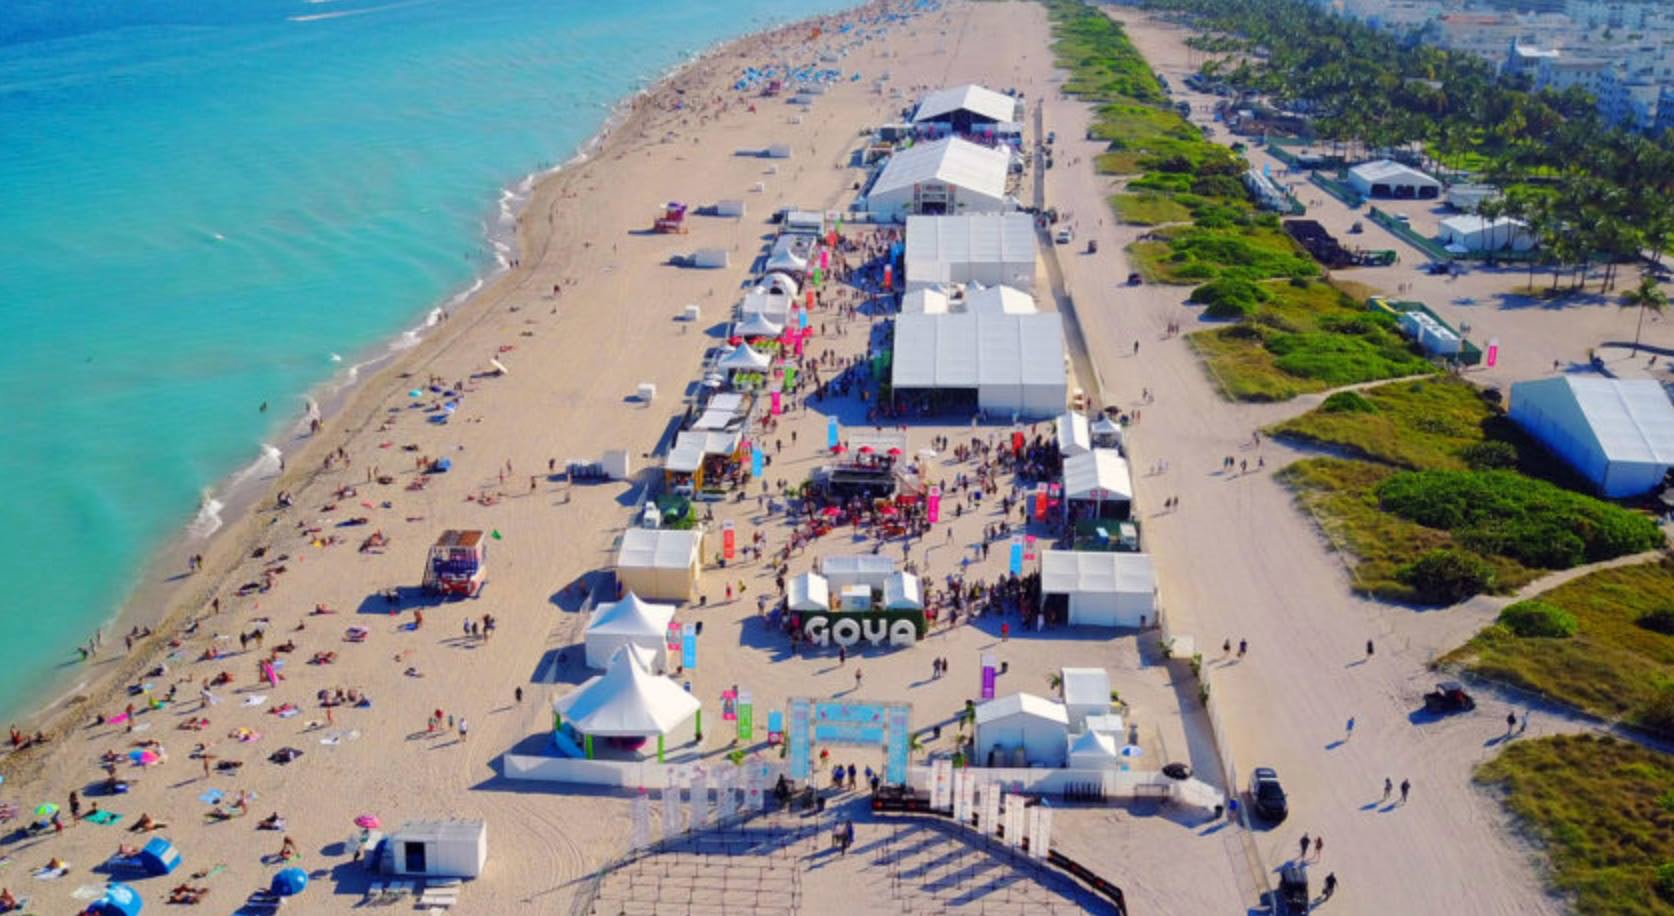 aerial view of the South Beach Wine & Food Festival